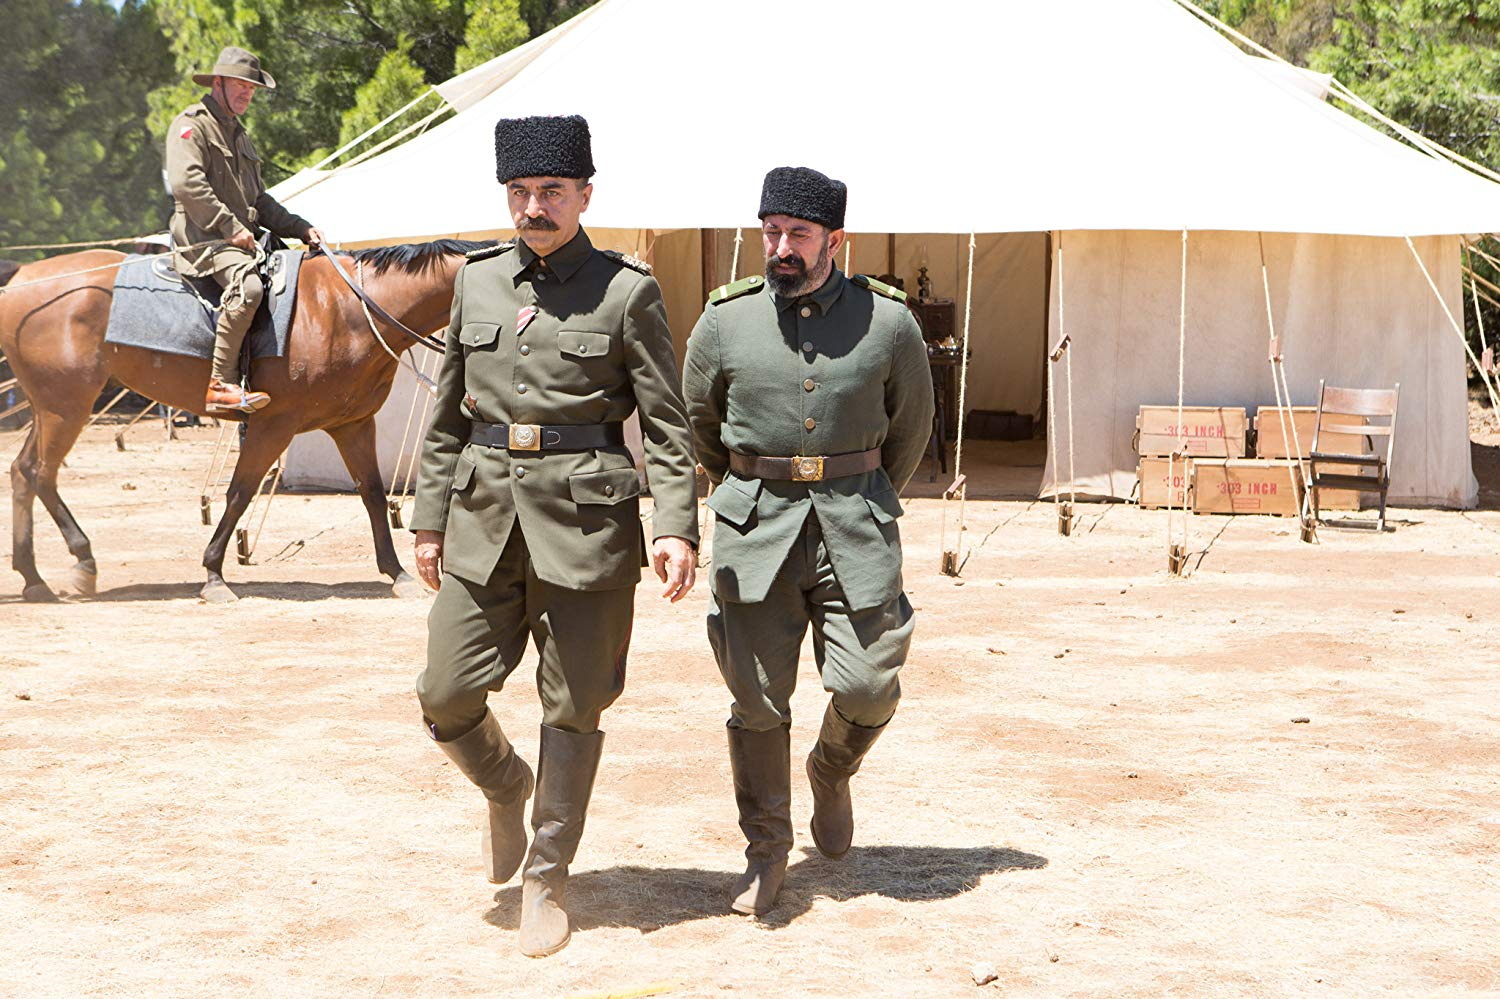 Son Umut – (The Water Diviner)